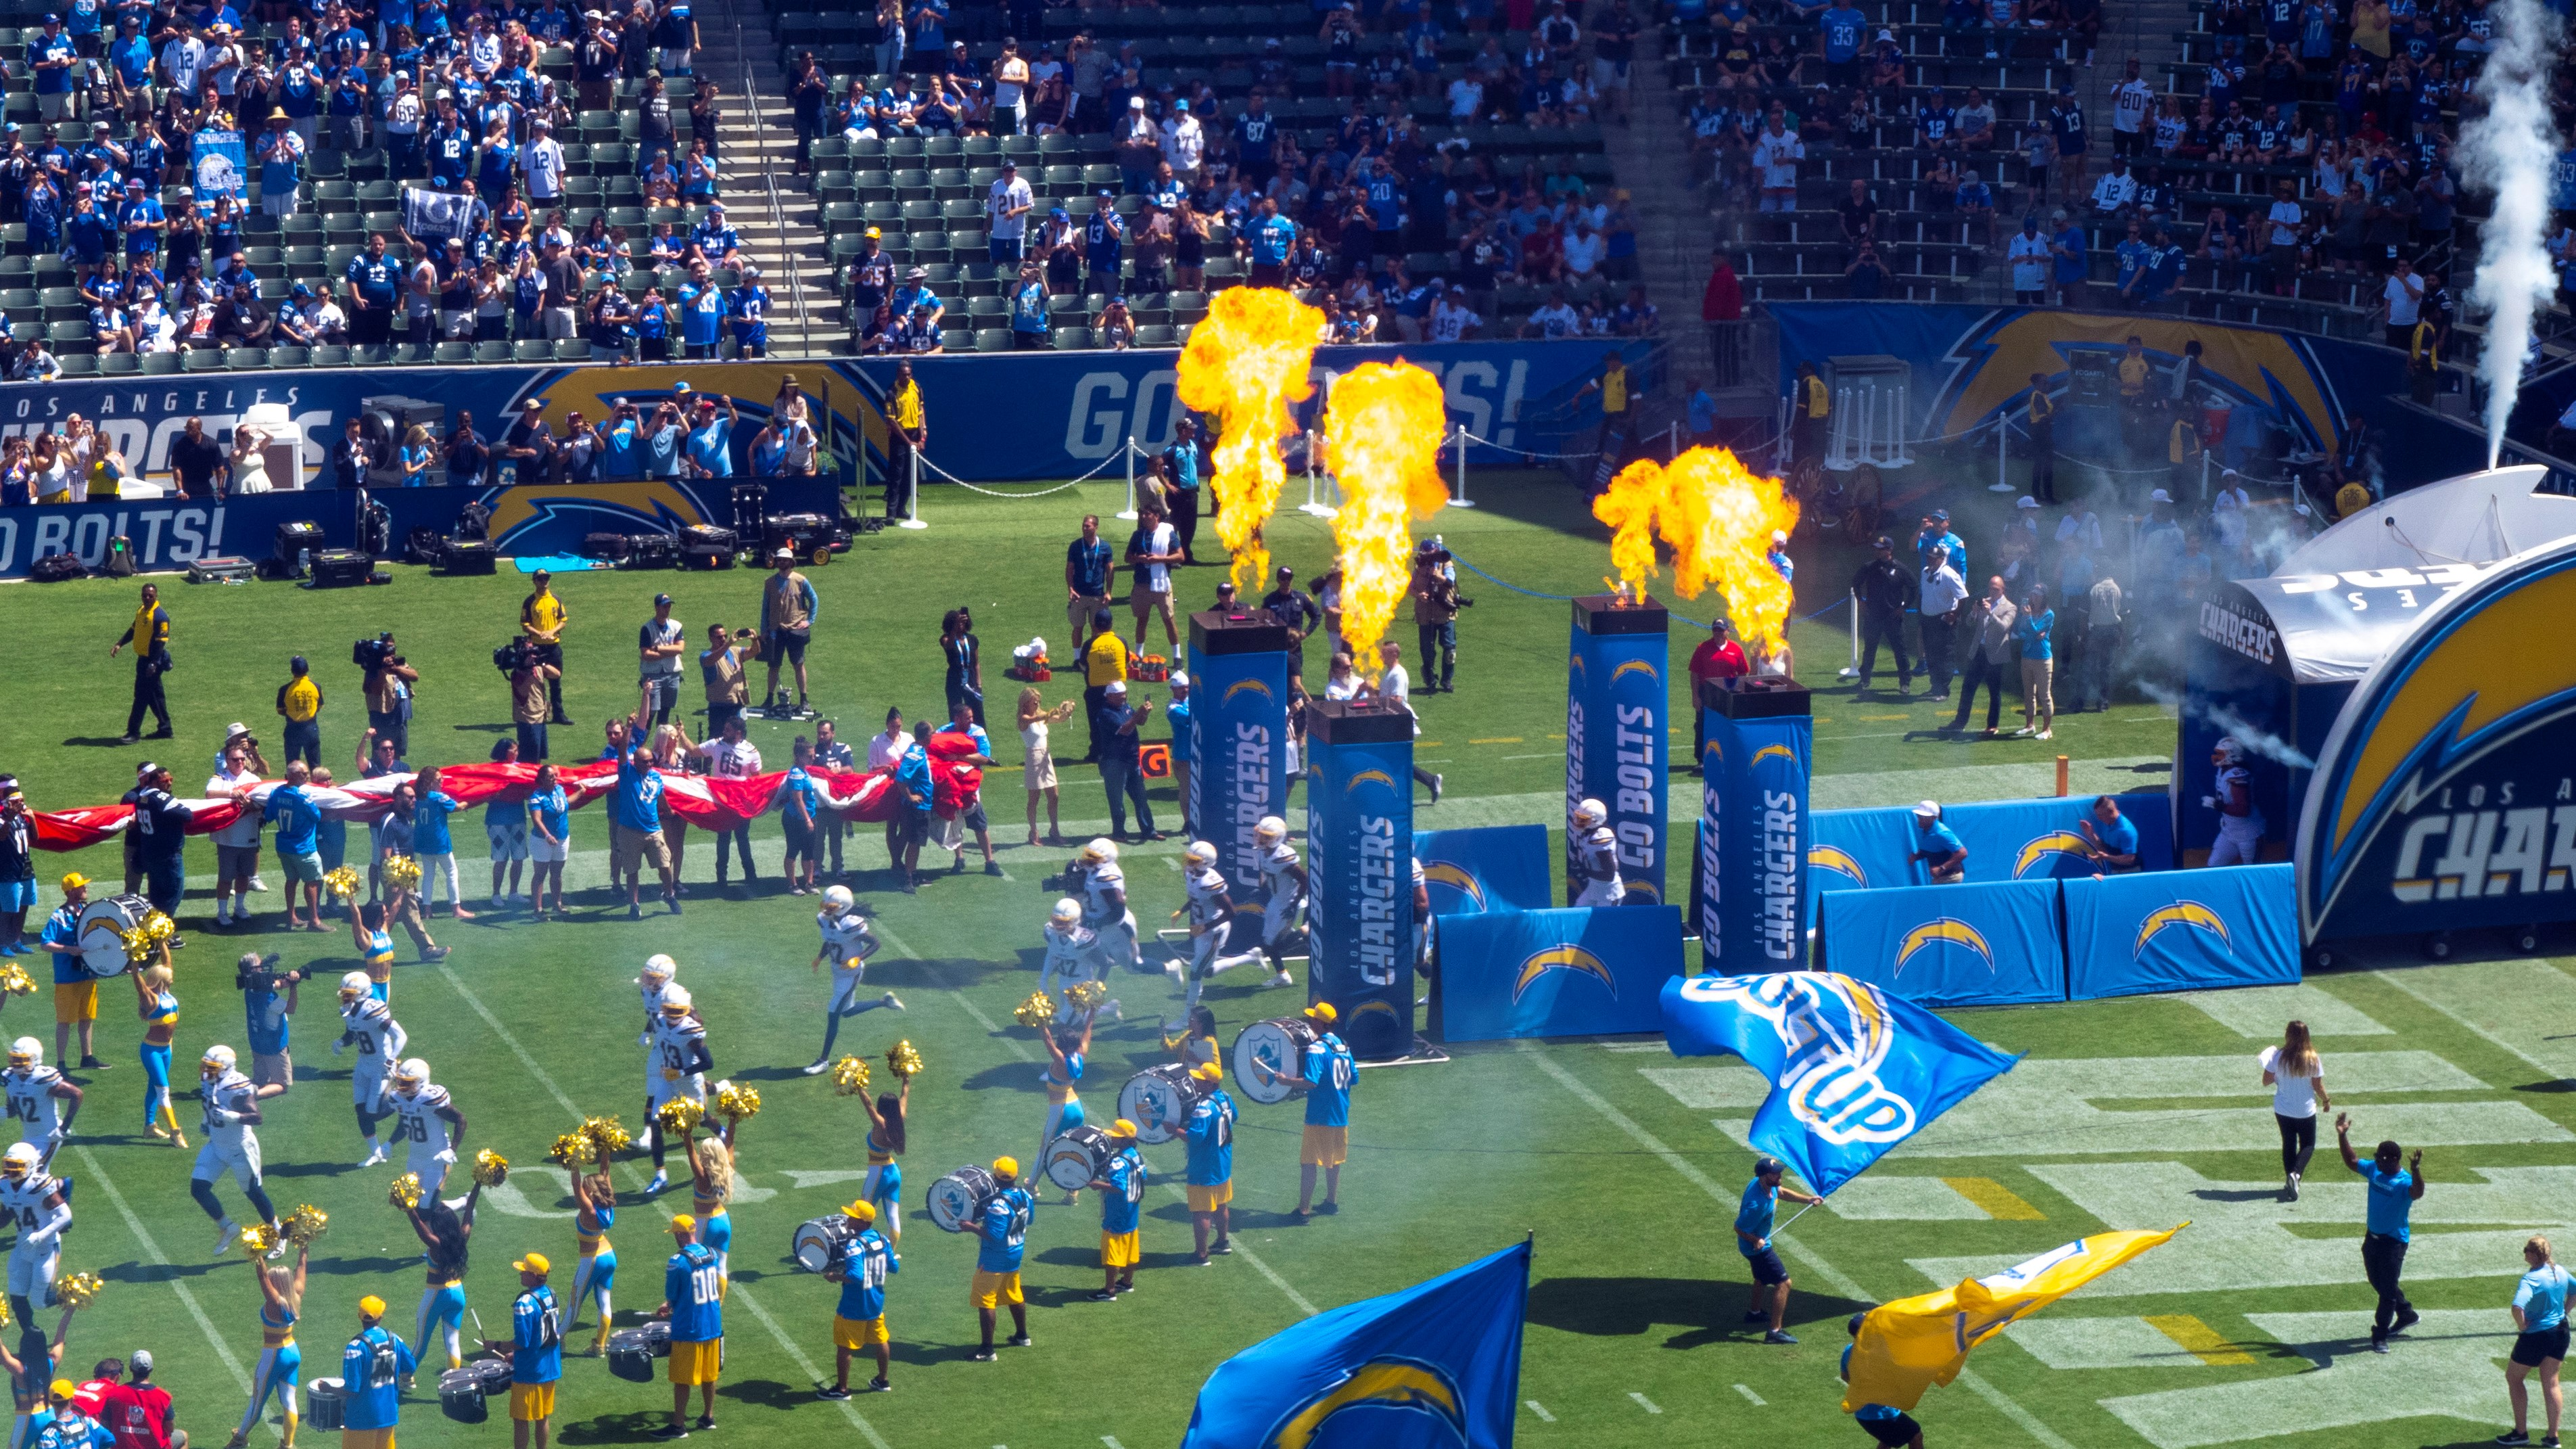 Chargers vs. Colts